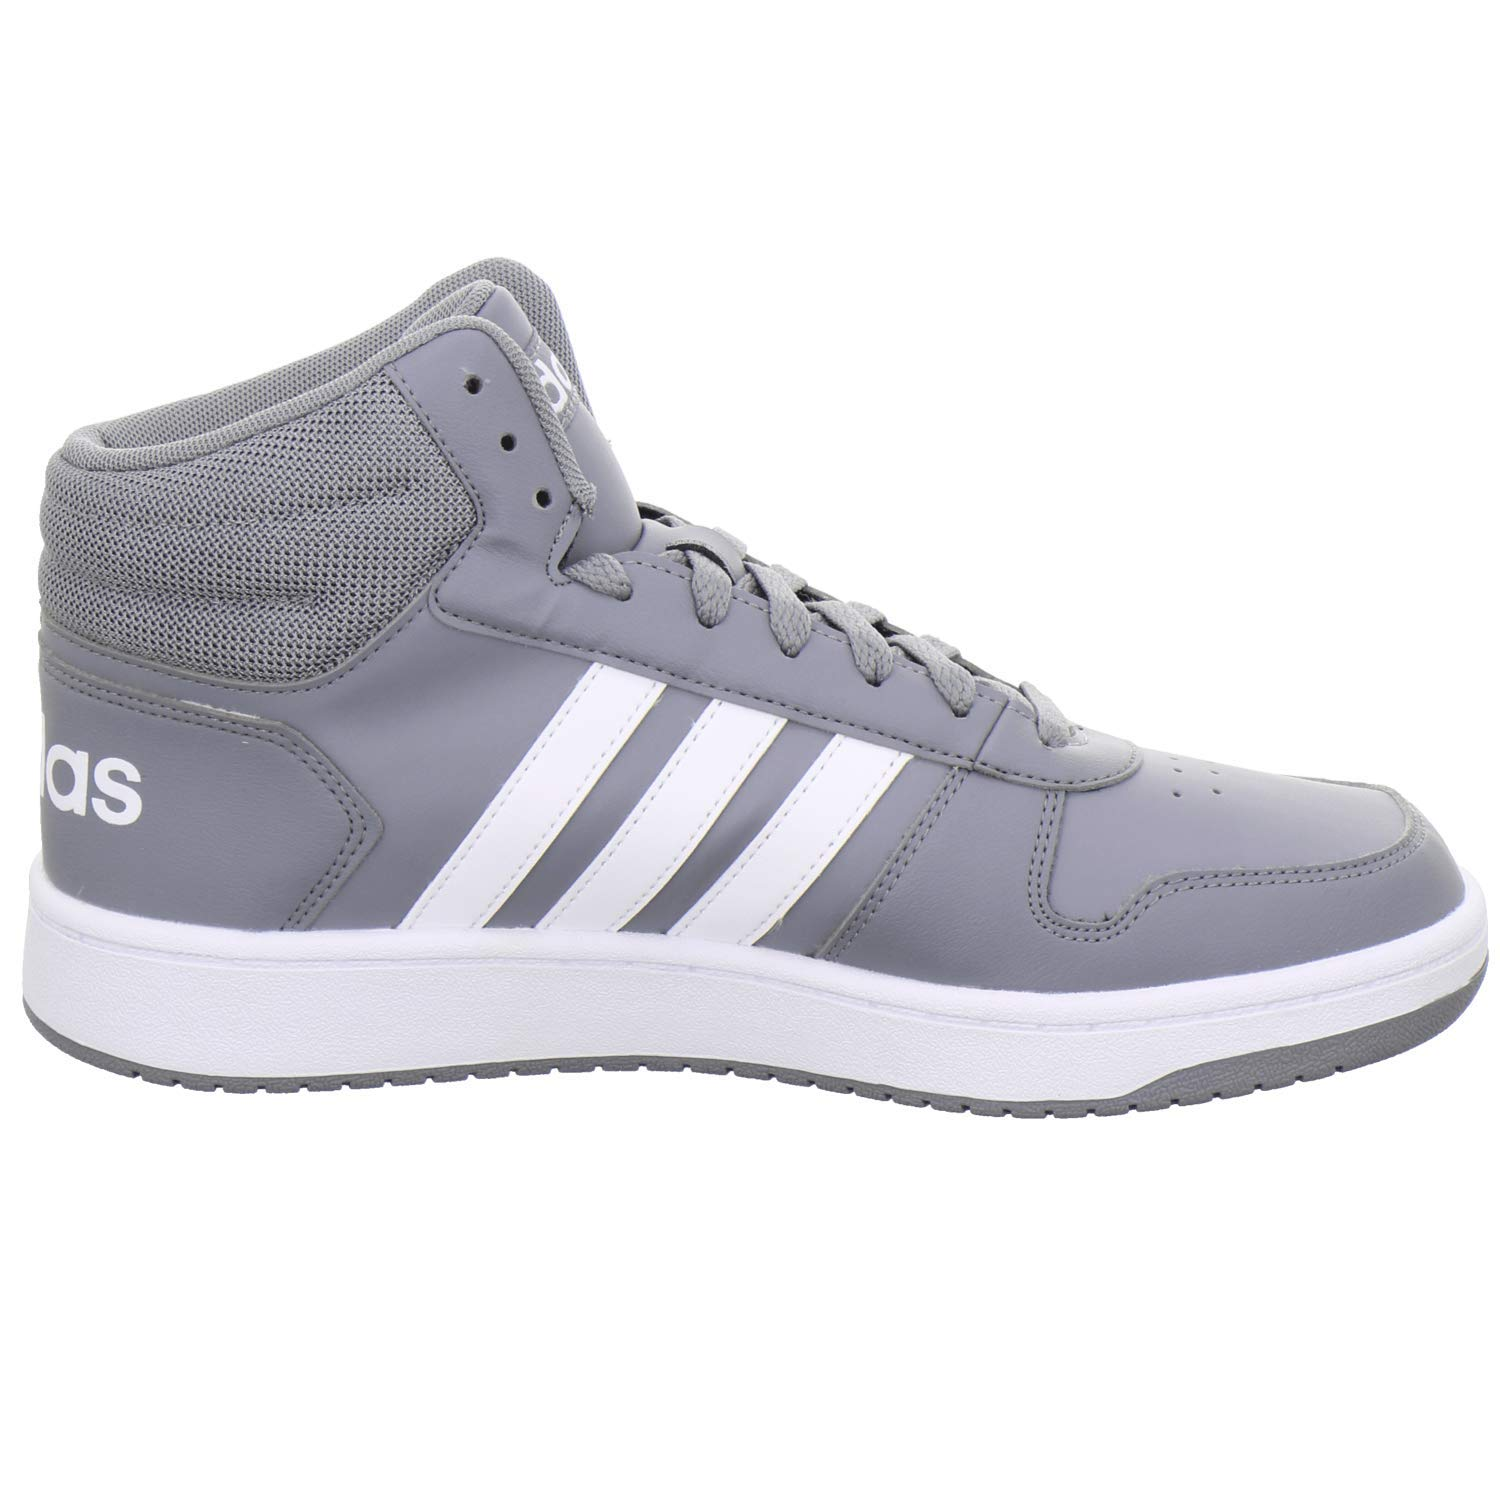 adidas Men  s Hoops 2.0 Mid Fitness Shoes BB7207  1540904748-152699 ... 799ed2b2e